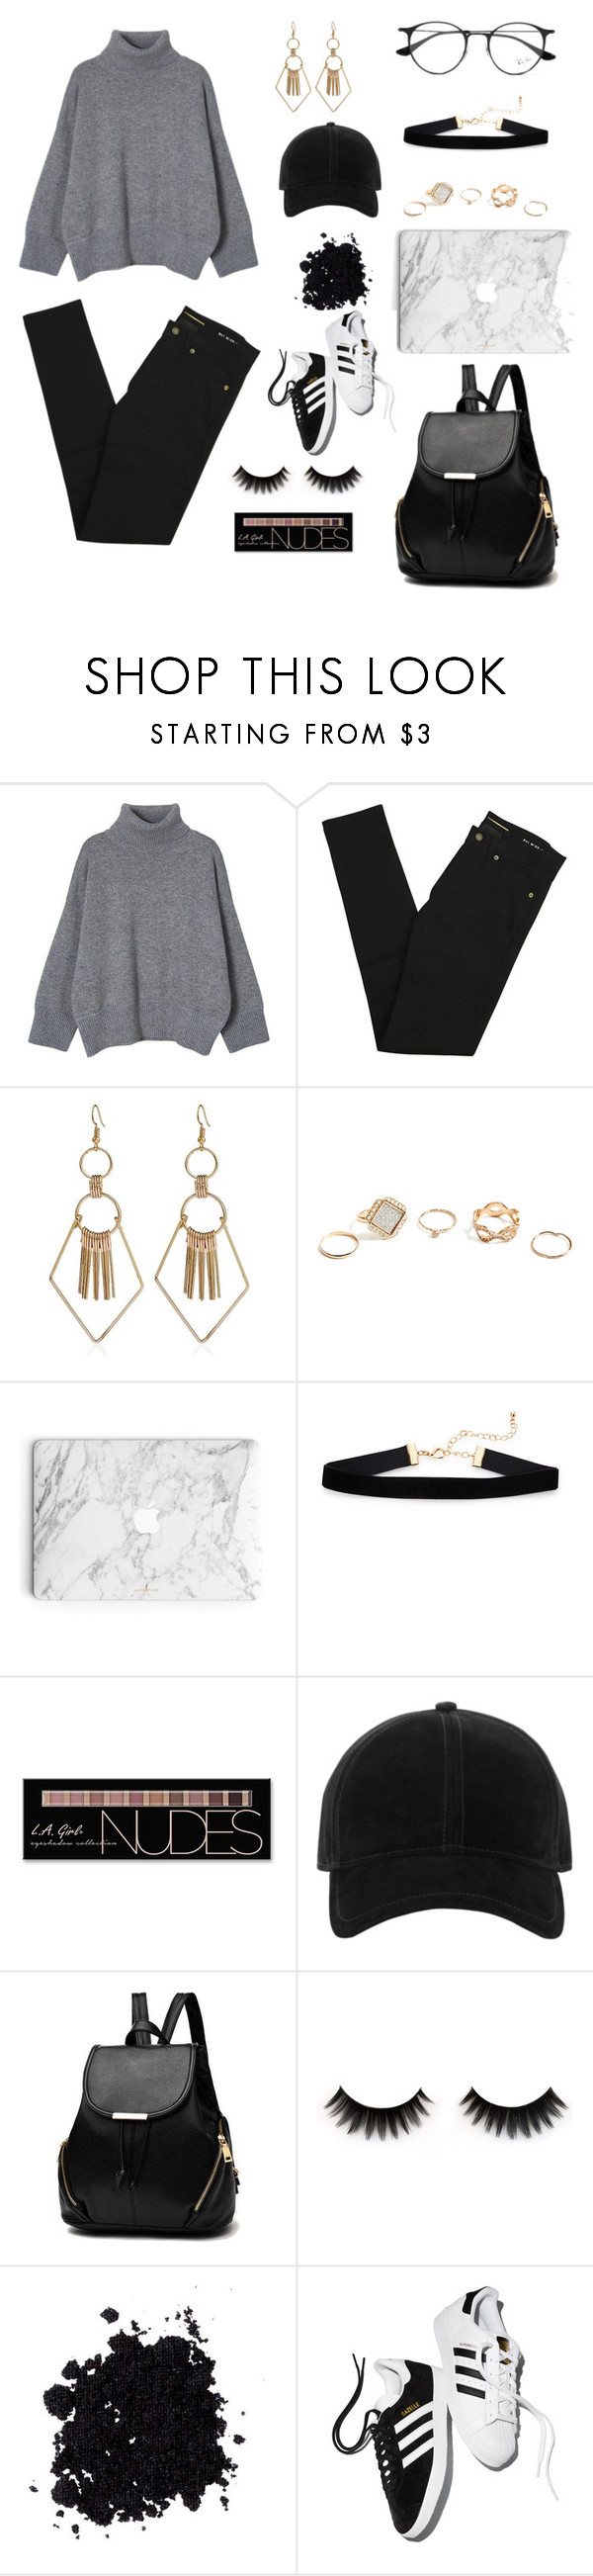 """""""🌃🌃🌃🌃"""" by yinyangme ❤ liked on Polyvore featuring Yves Saint Laurent, GUESS, Charlotte Russe, rag & bone, adidas and Ray-Ban"""